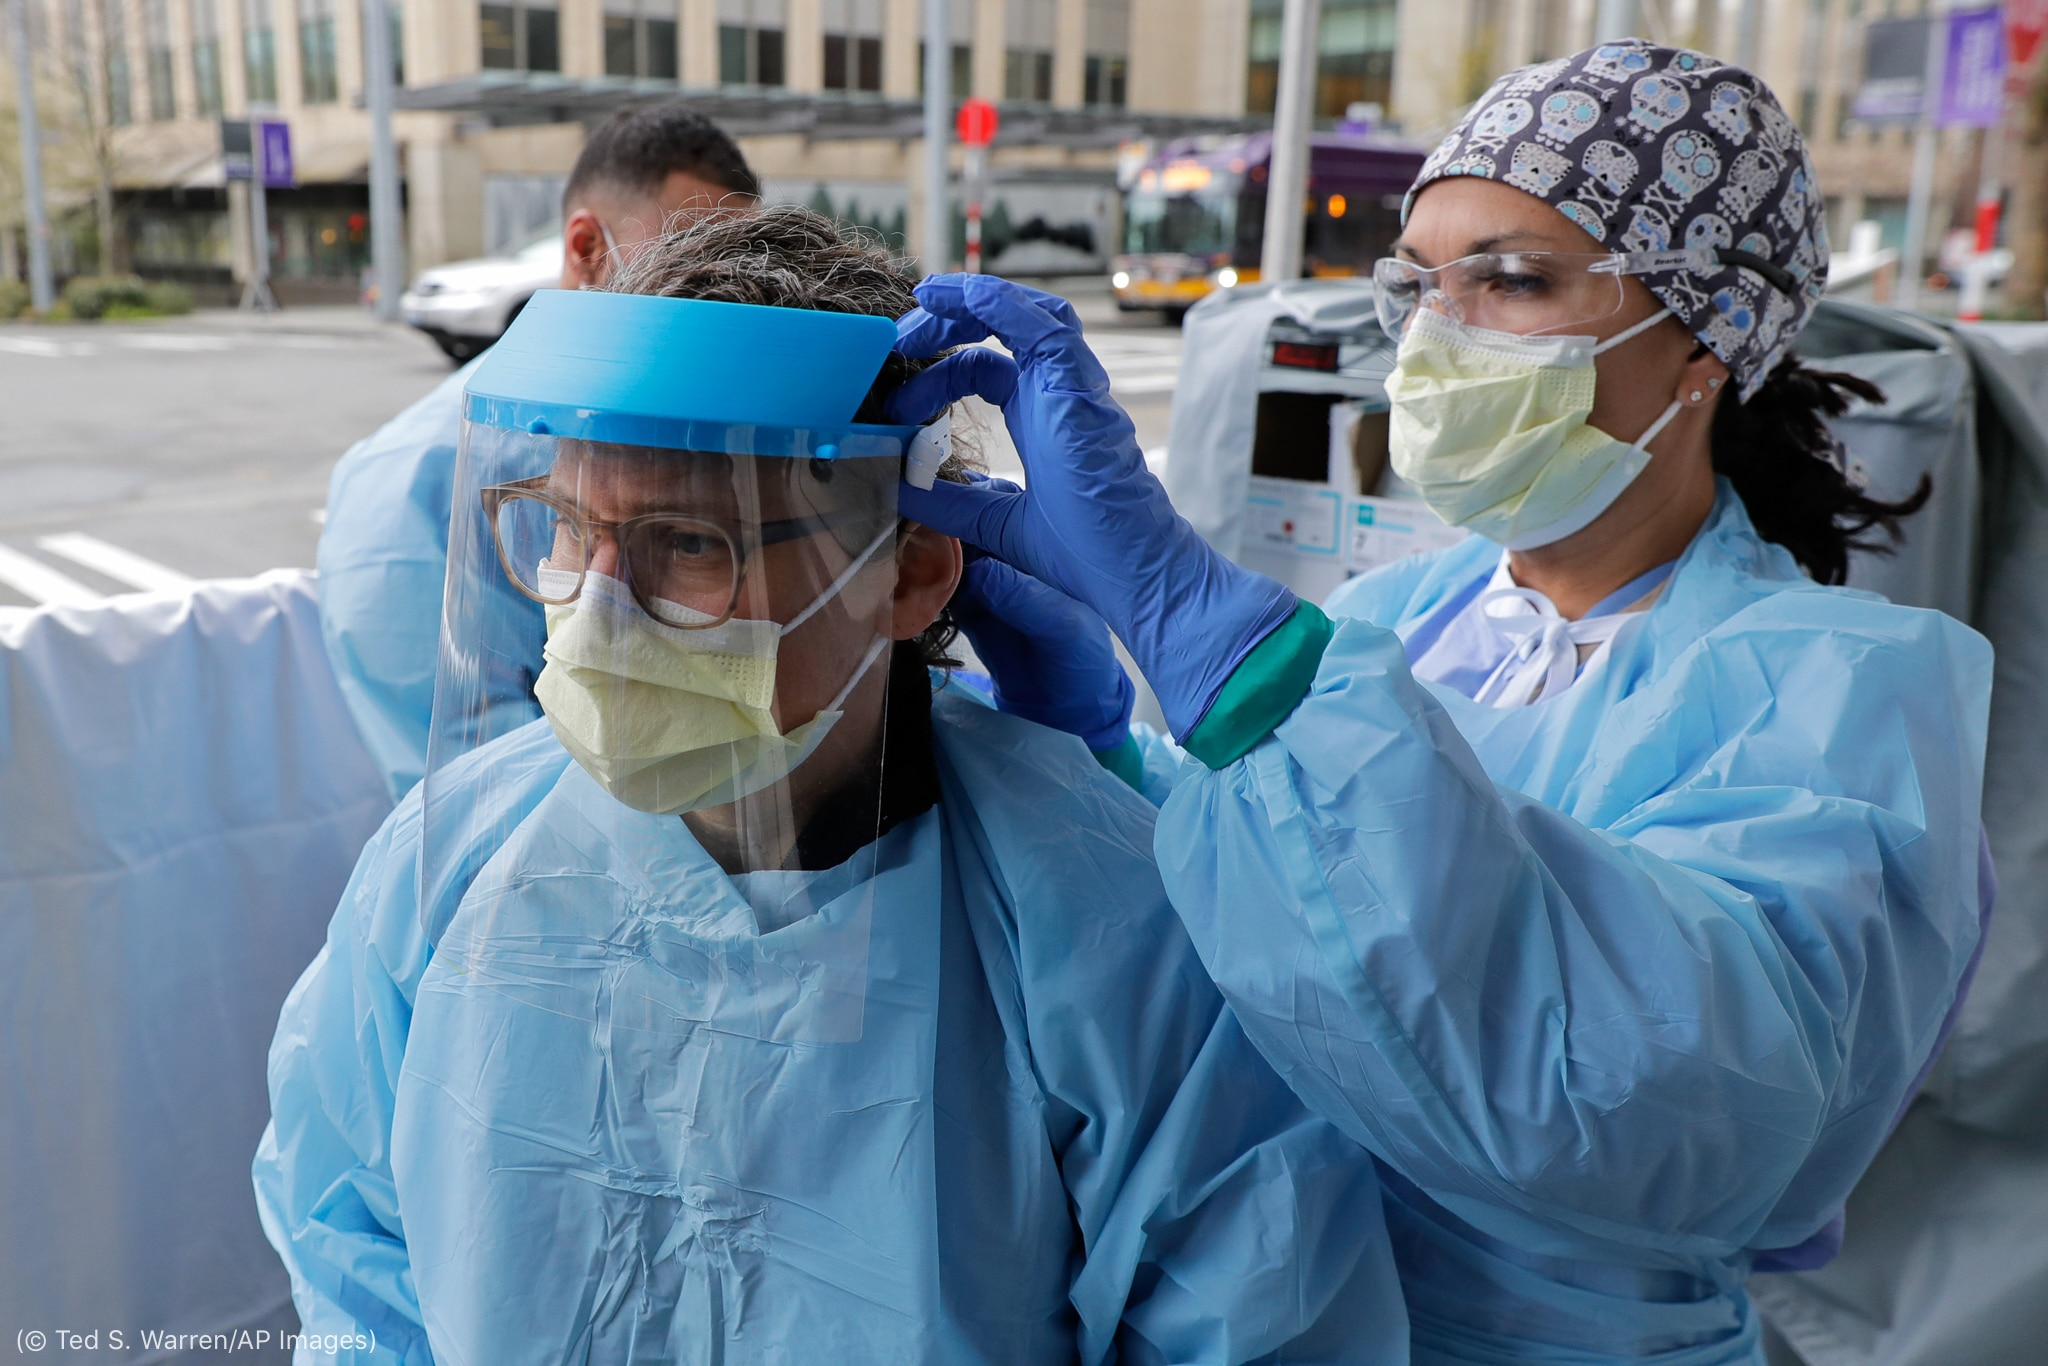 Woman in blue protective gown helping colleague put on face shield (© Ted S. Warren/AP Images)